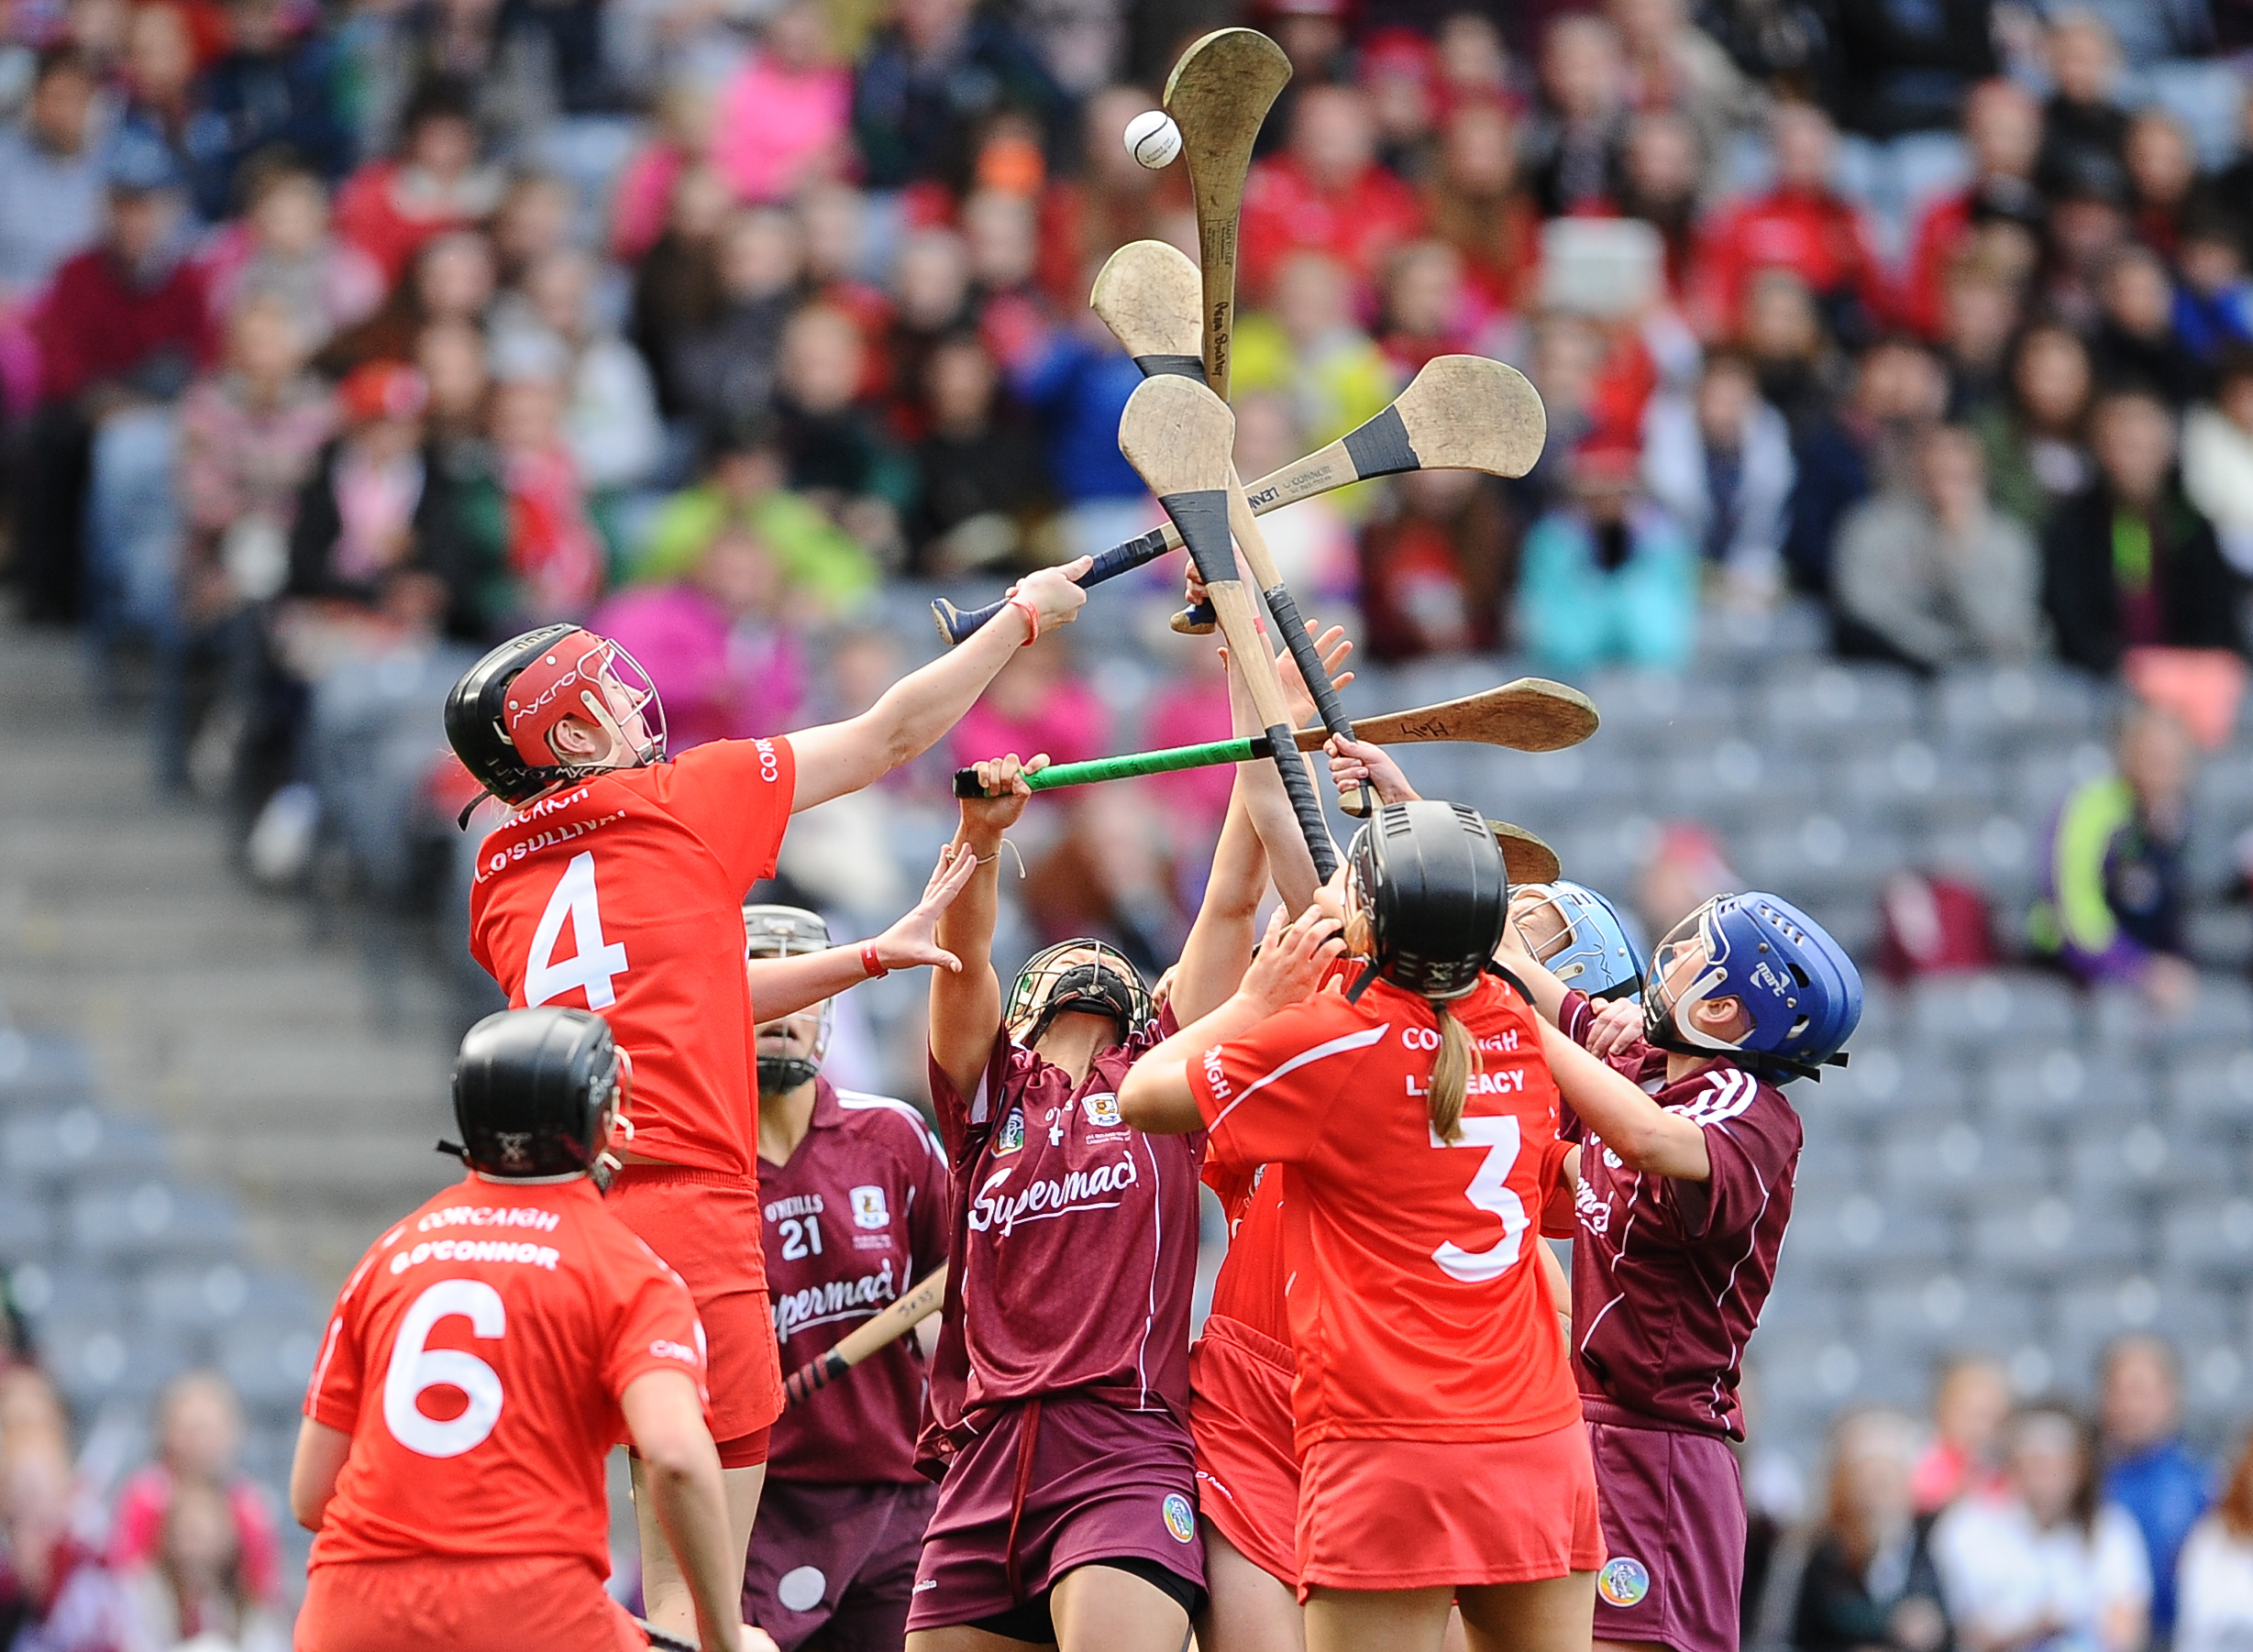 REPRO FREE***PRESS RELEASE NO REPRODUCTION FEE*** Liberty Insurance Senior Camogie Championship Final, Croke Park, Dublin 13/9/2015 Cork vs Galway GalwayÕs Molly Dunne contests a dropping ball with Laura Treacy and Leanne O'Sullivan of Cork Mandatory Credit ©INPHO/Tommy Grealy